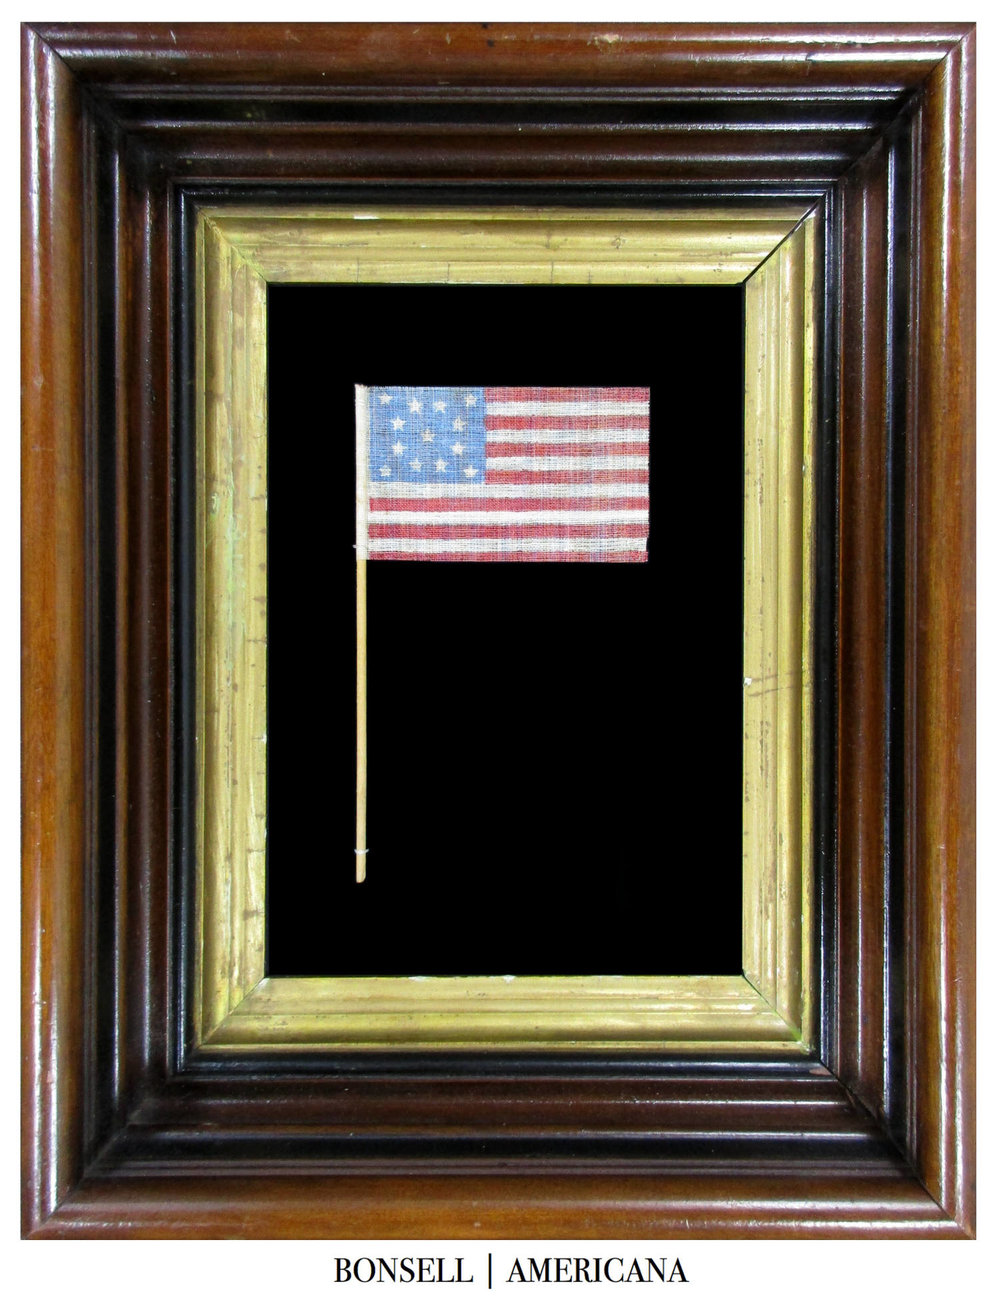 13 Star Antique US Parade Flag Made to Celebrate the Centennial in 1876